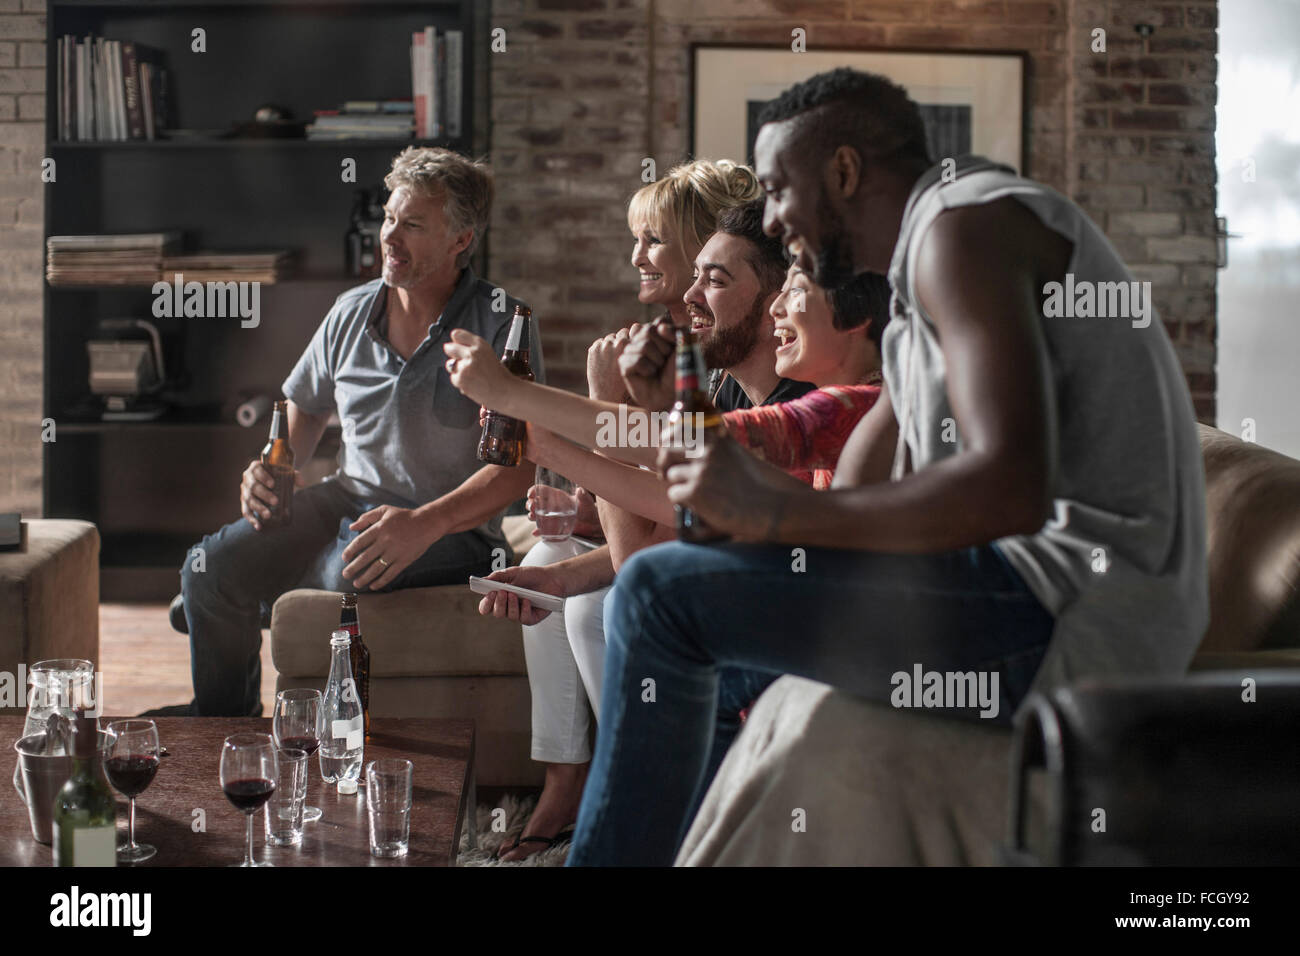 Friends together having a good time watching TV - Stock Image